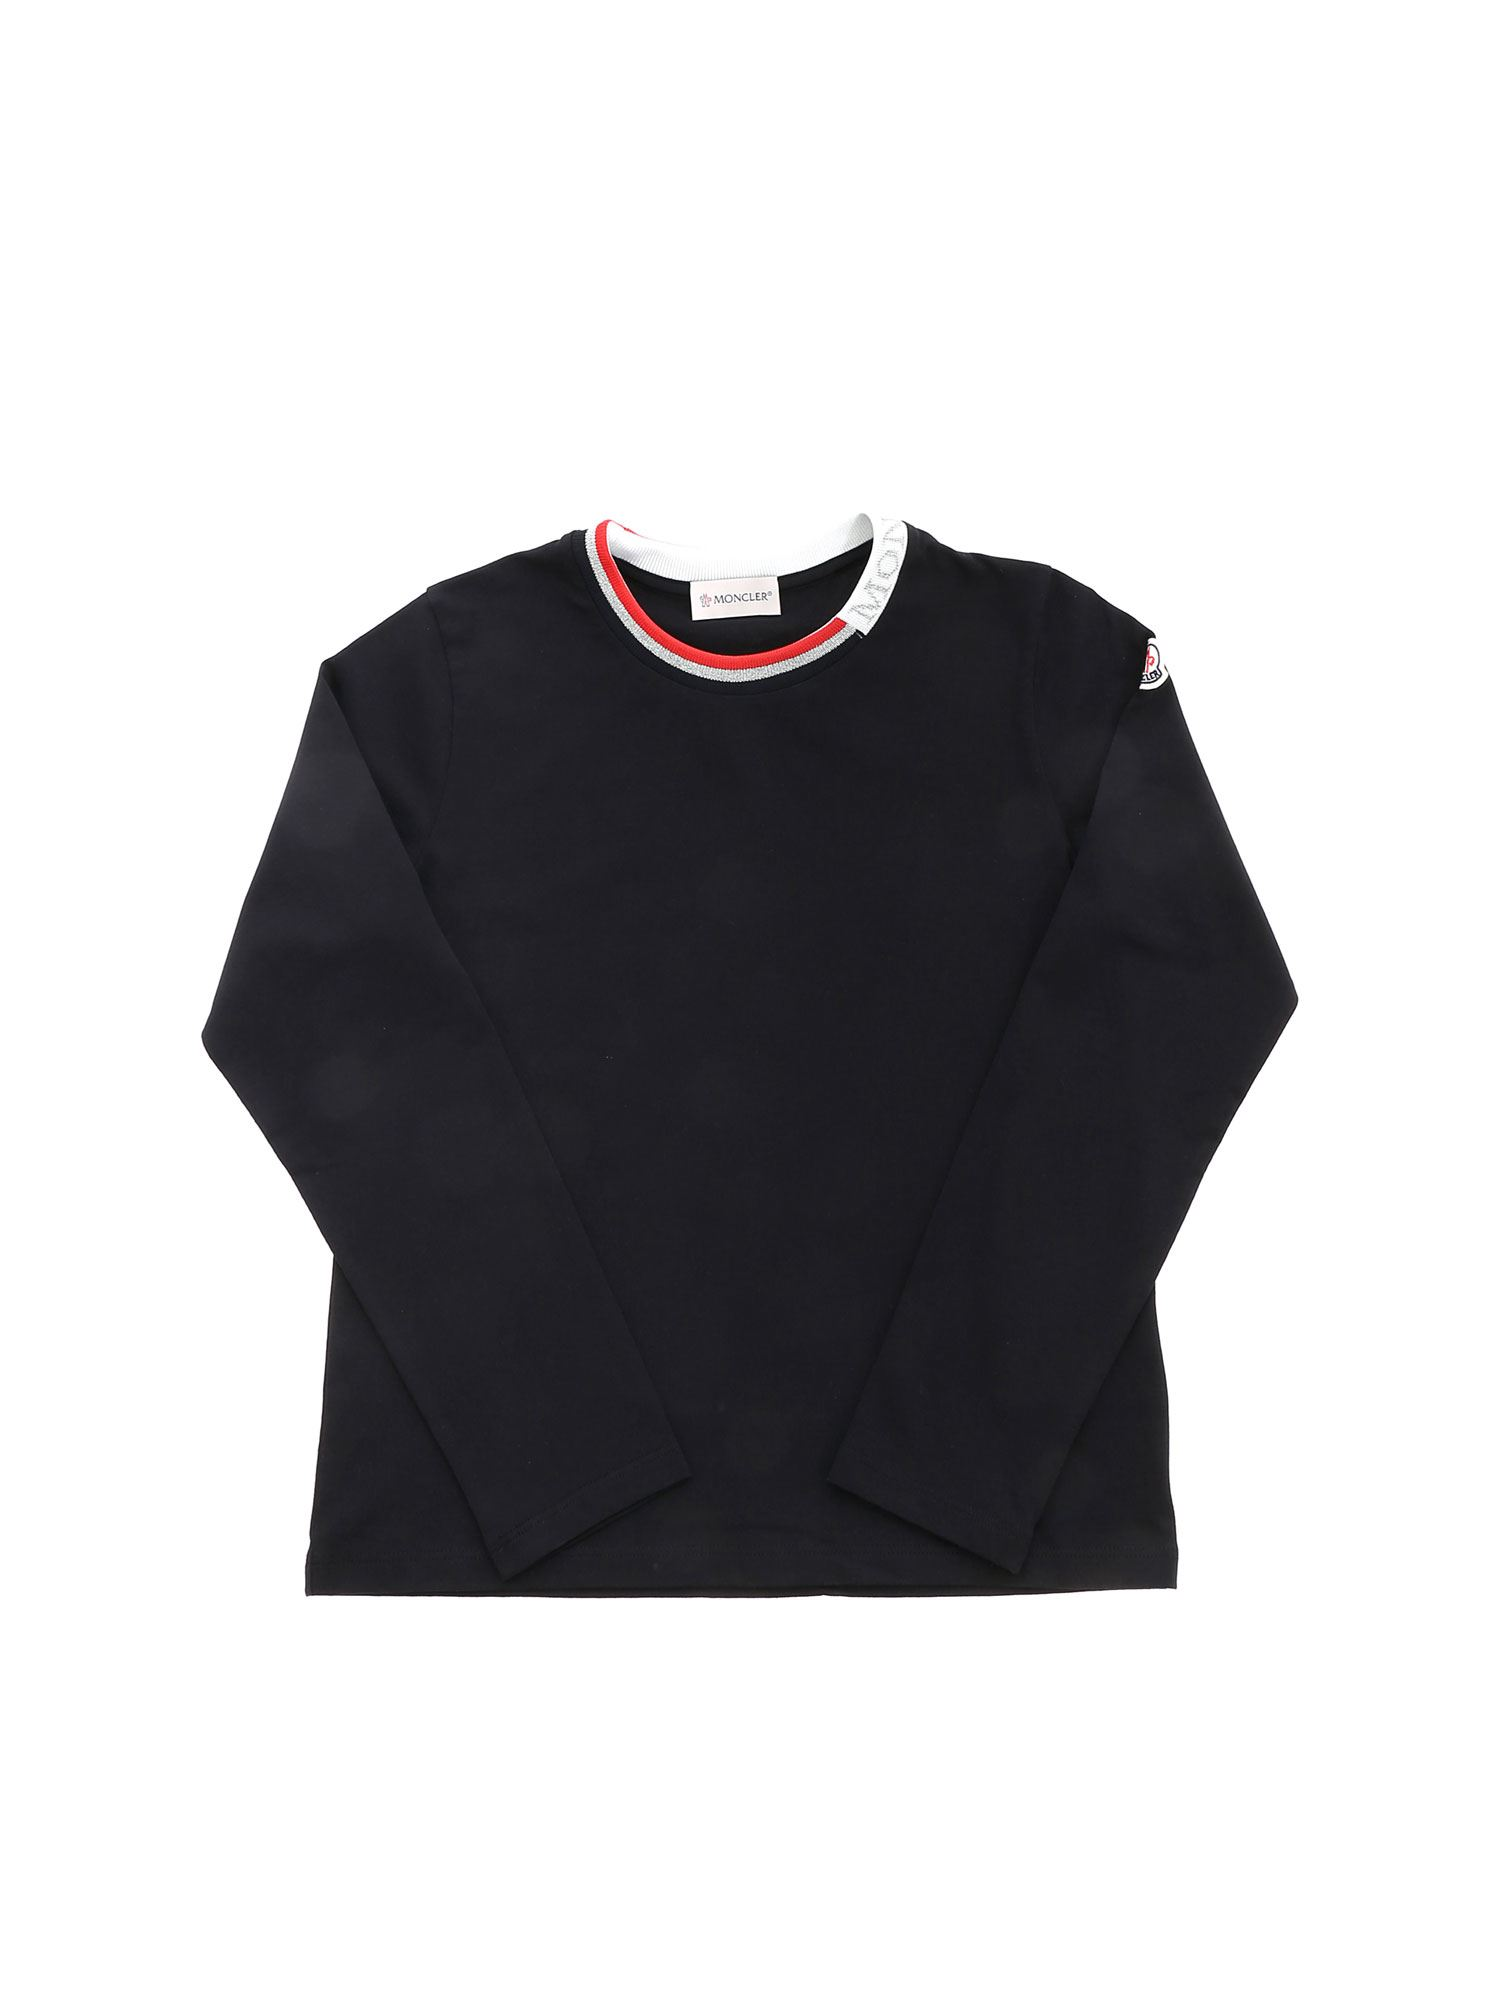 Moncler Jr LAMÉ LOGO T-SHIRT IN BLACK